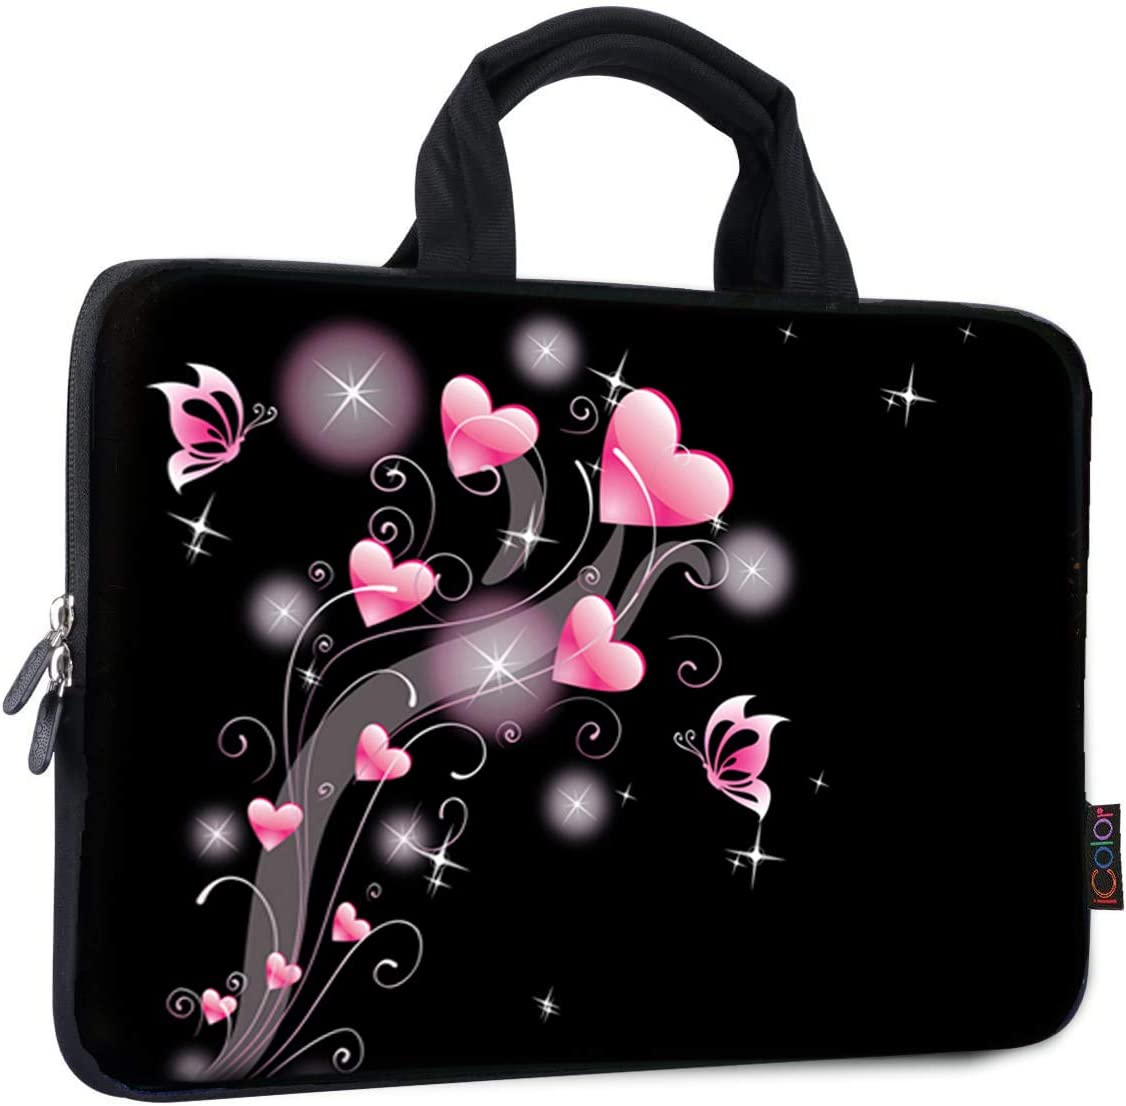 iColor 14 15 15.4 15.6 inch Laptop Bag Case Handle chromebook case Sleeve Computer Protect Case Pouch Holder Notebook Sleeve Neoprene Chromebook Cover Soft Carring Travel Case Pink Heart ICB-19